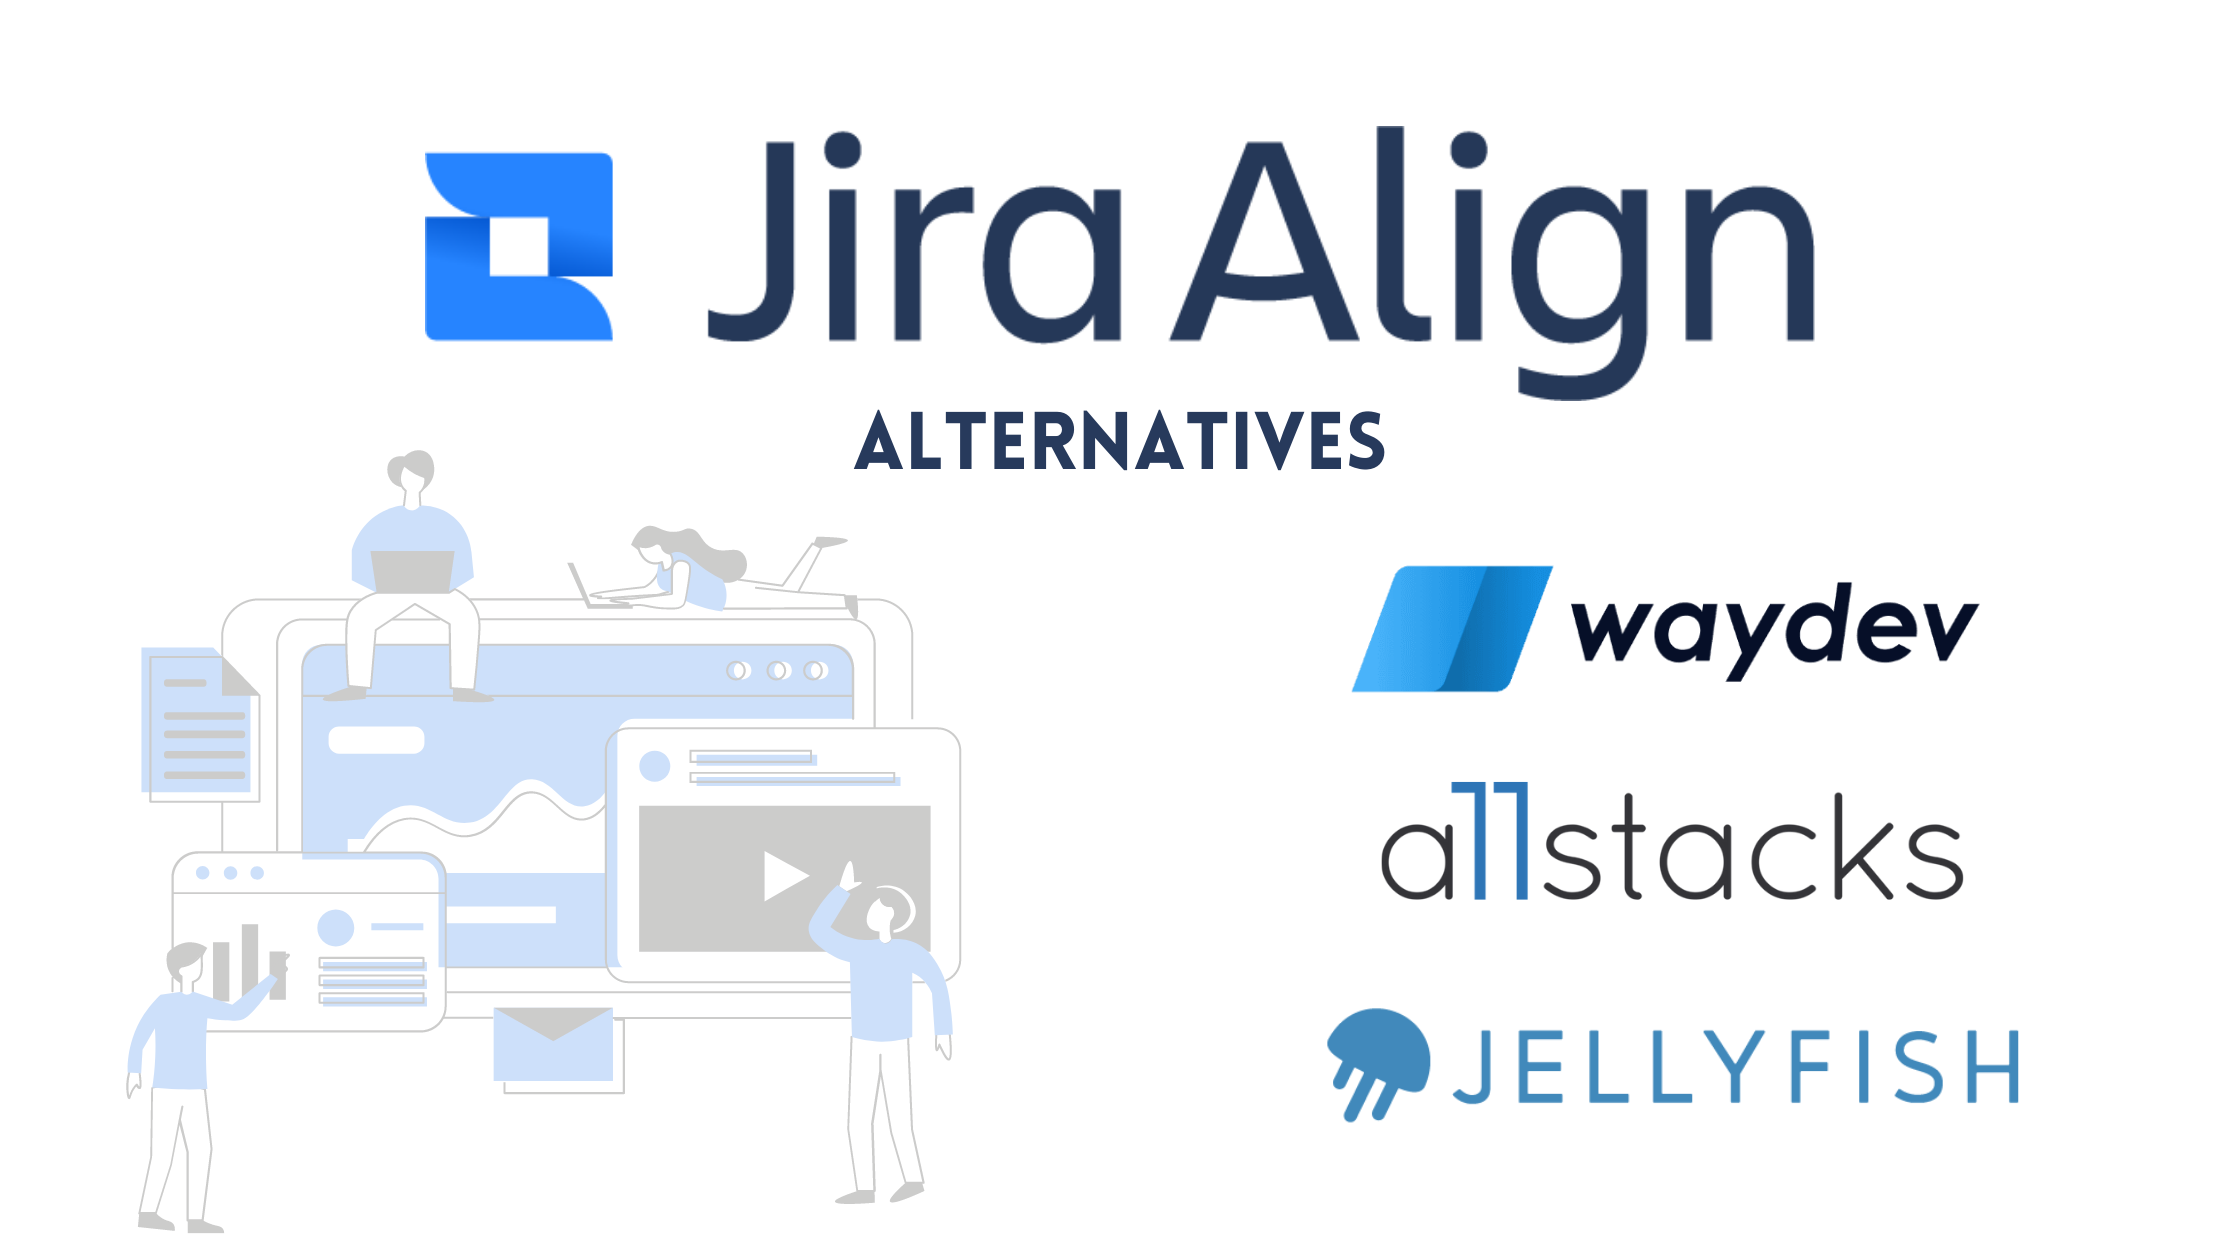 Jira Align alternatives